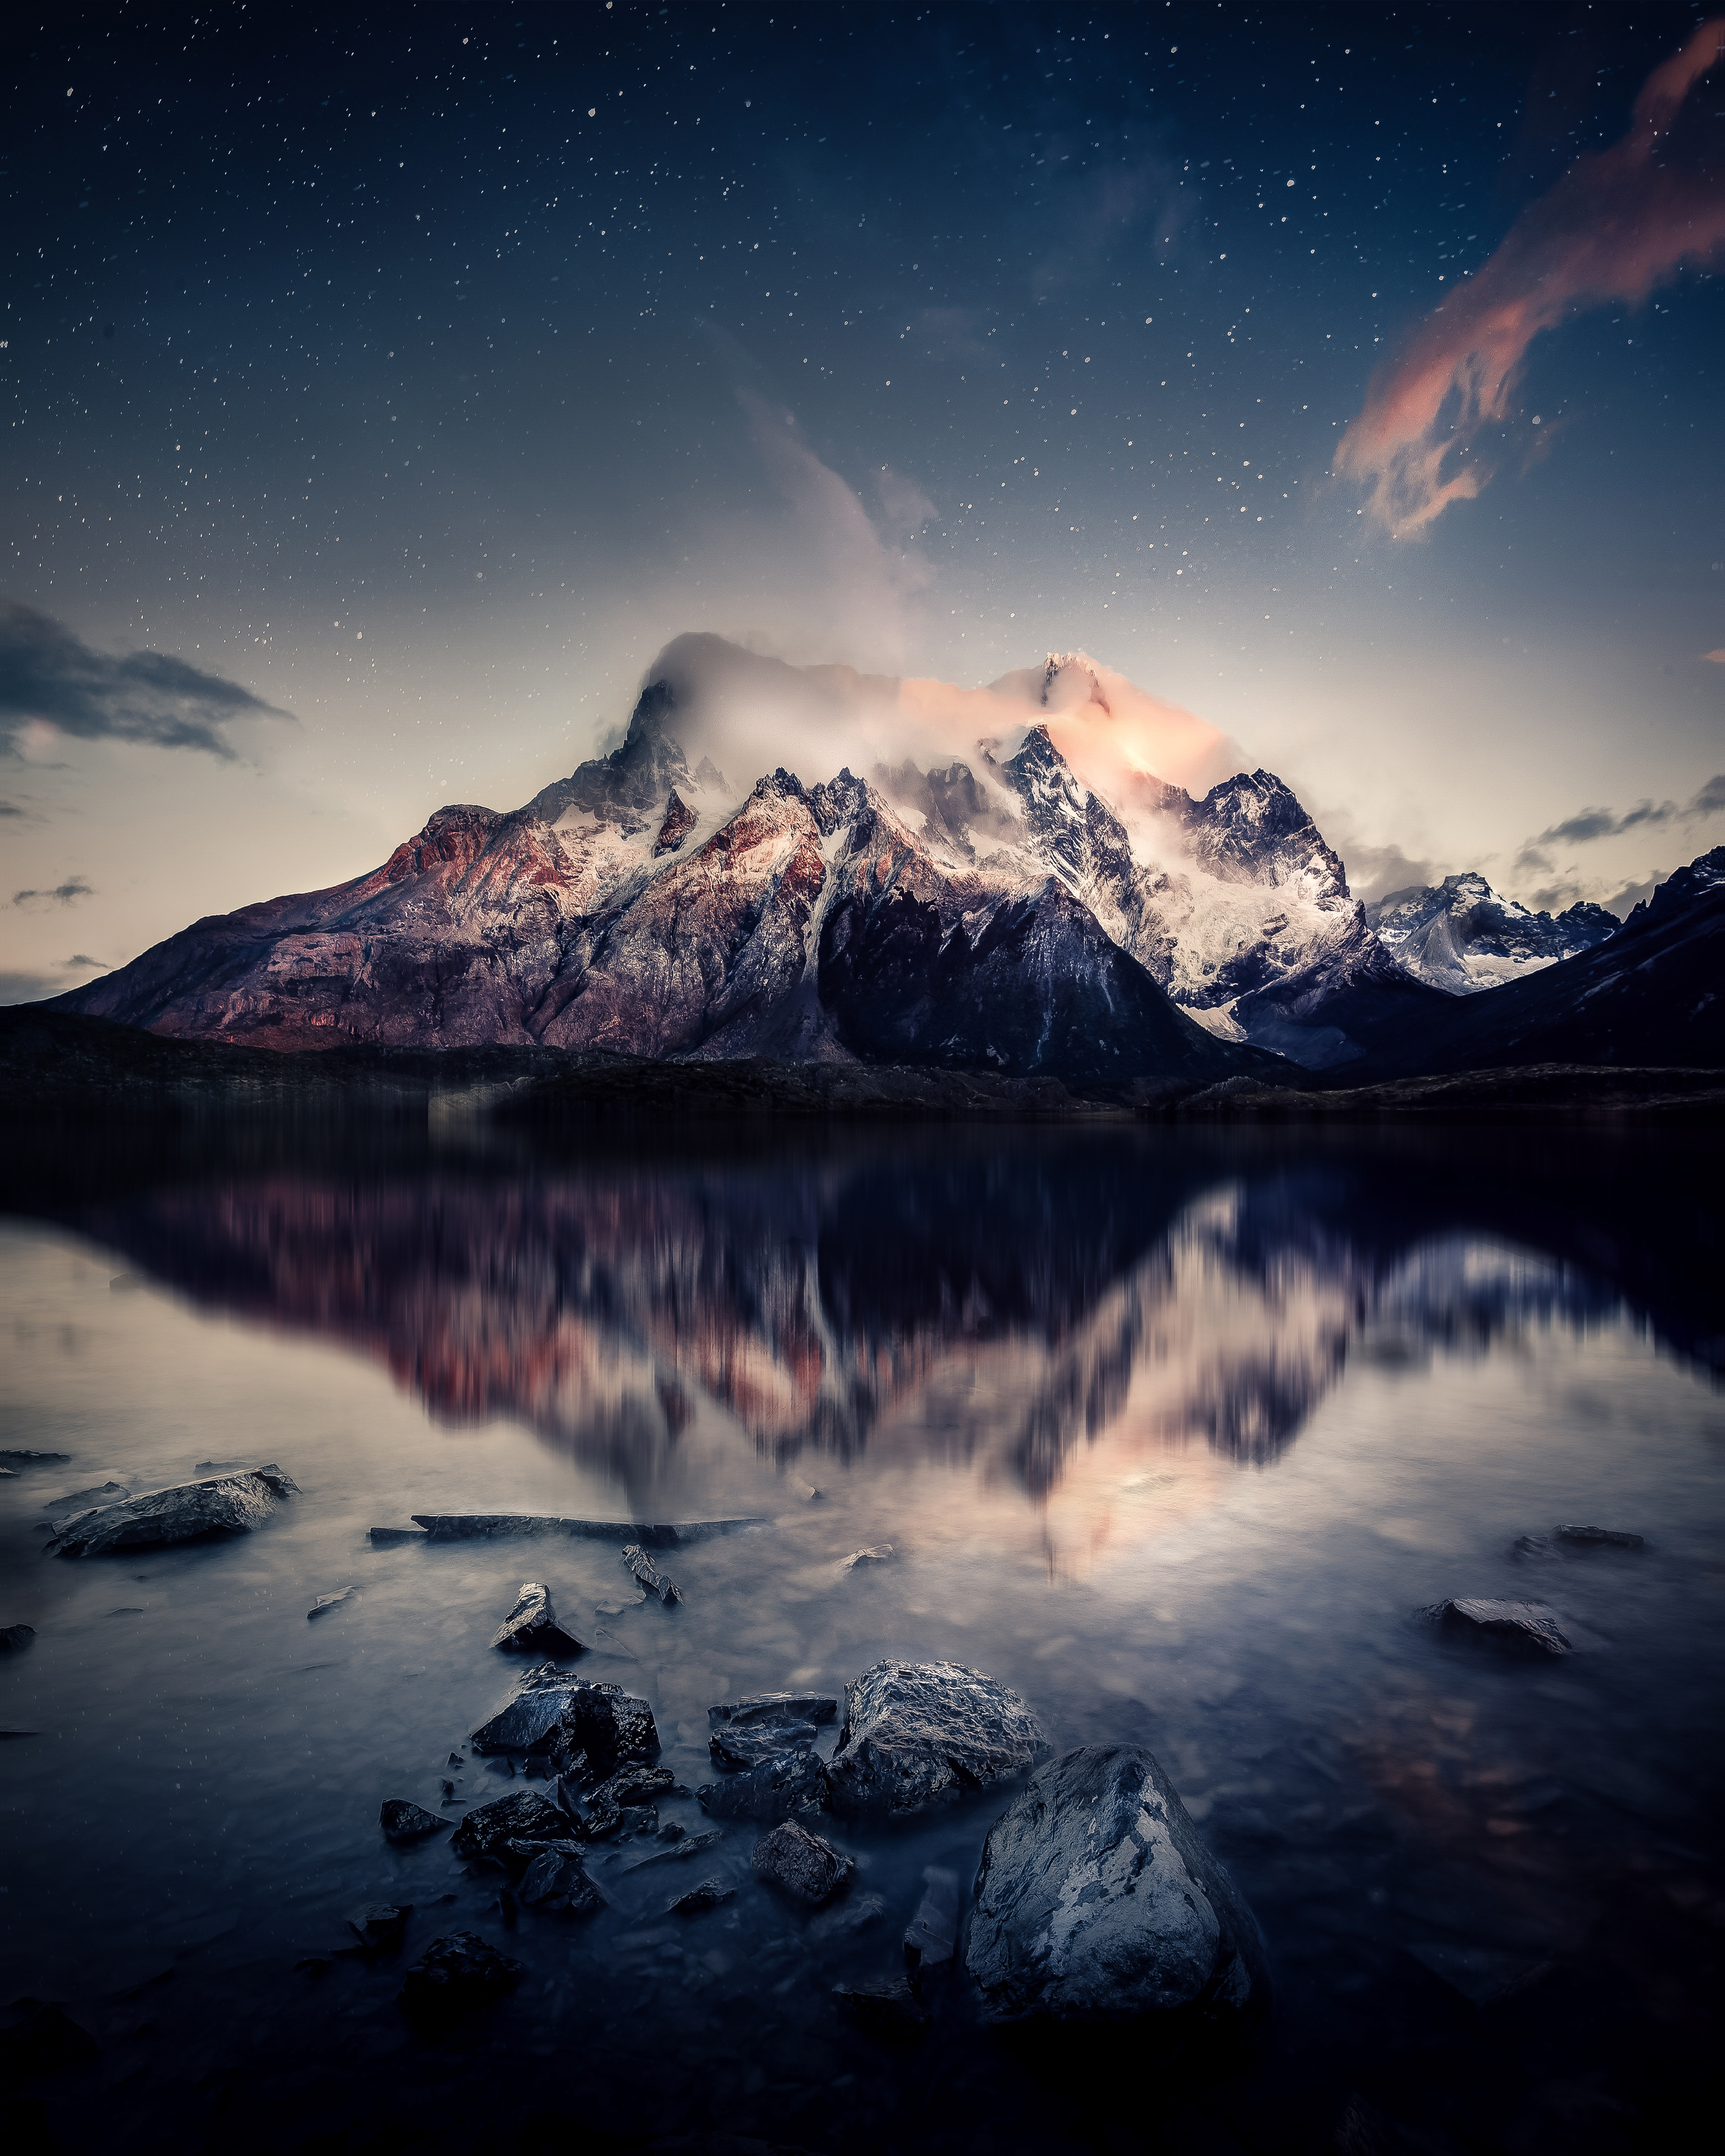 60980 download wallpaper Nature, Lake, Sky, Reflection, Stones, Mountains screensavers and pictures for free